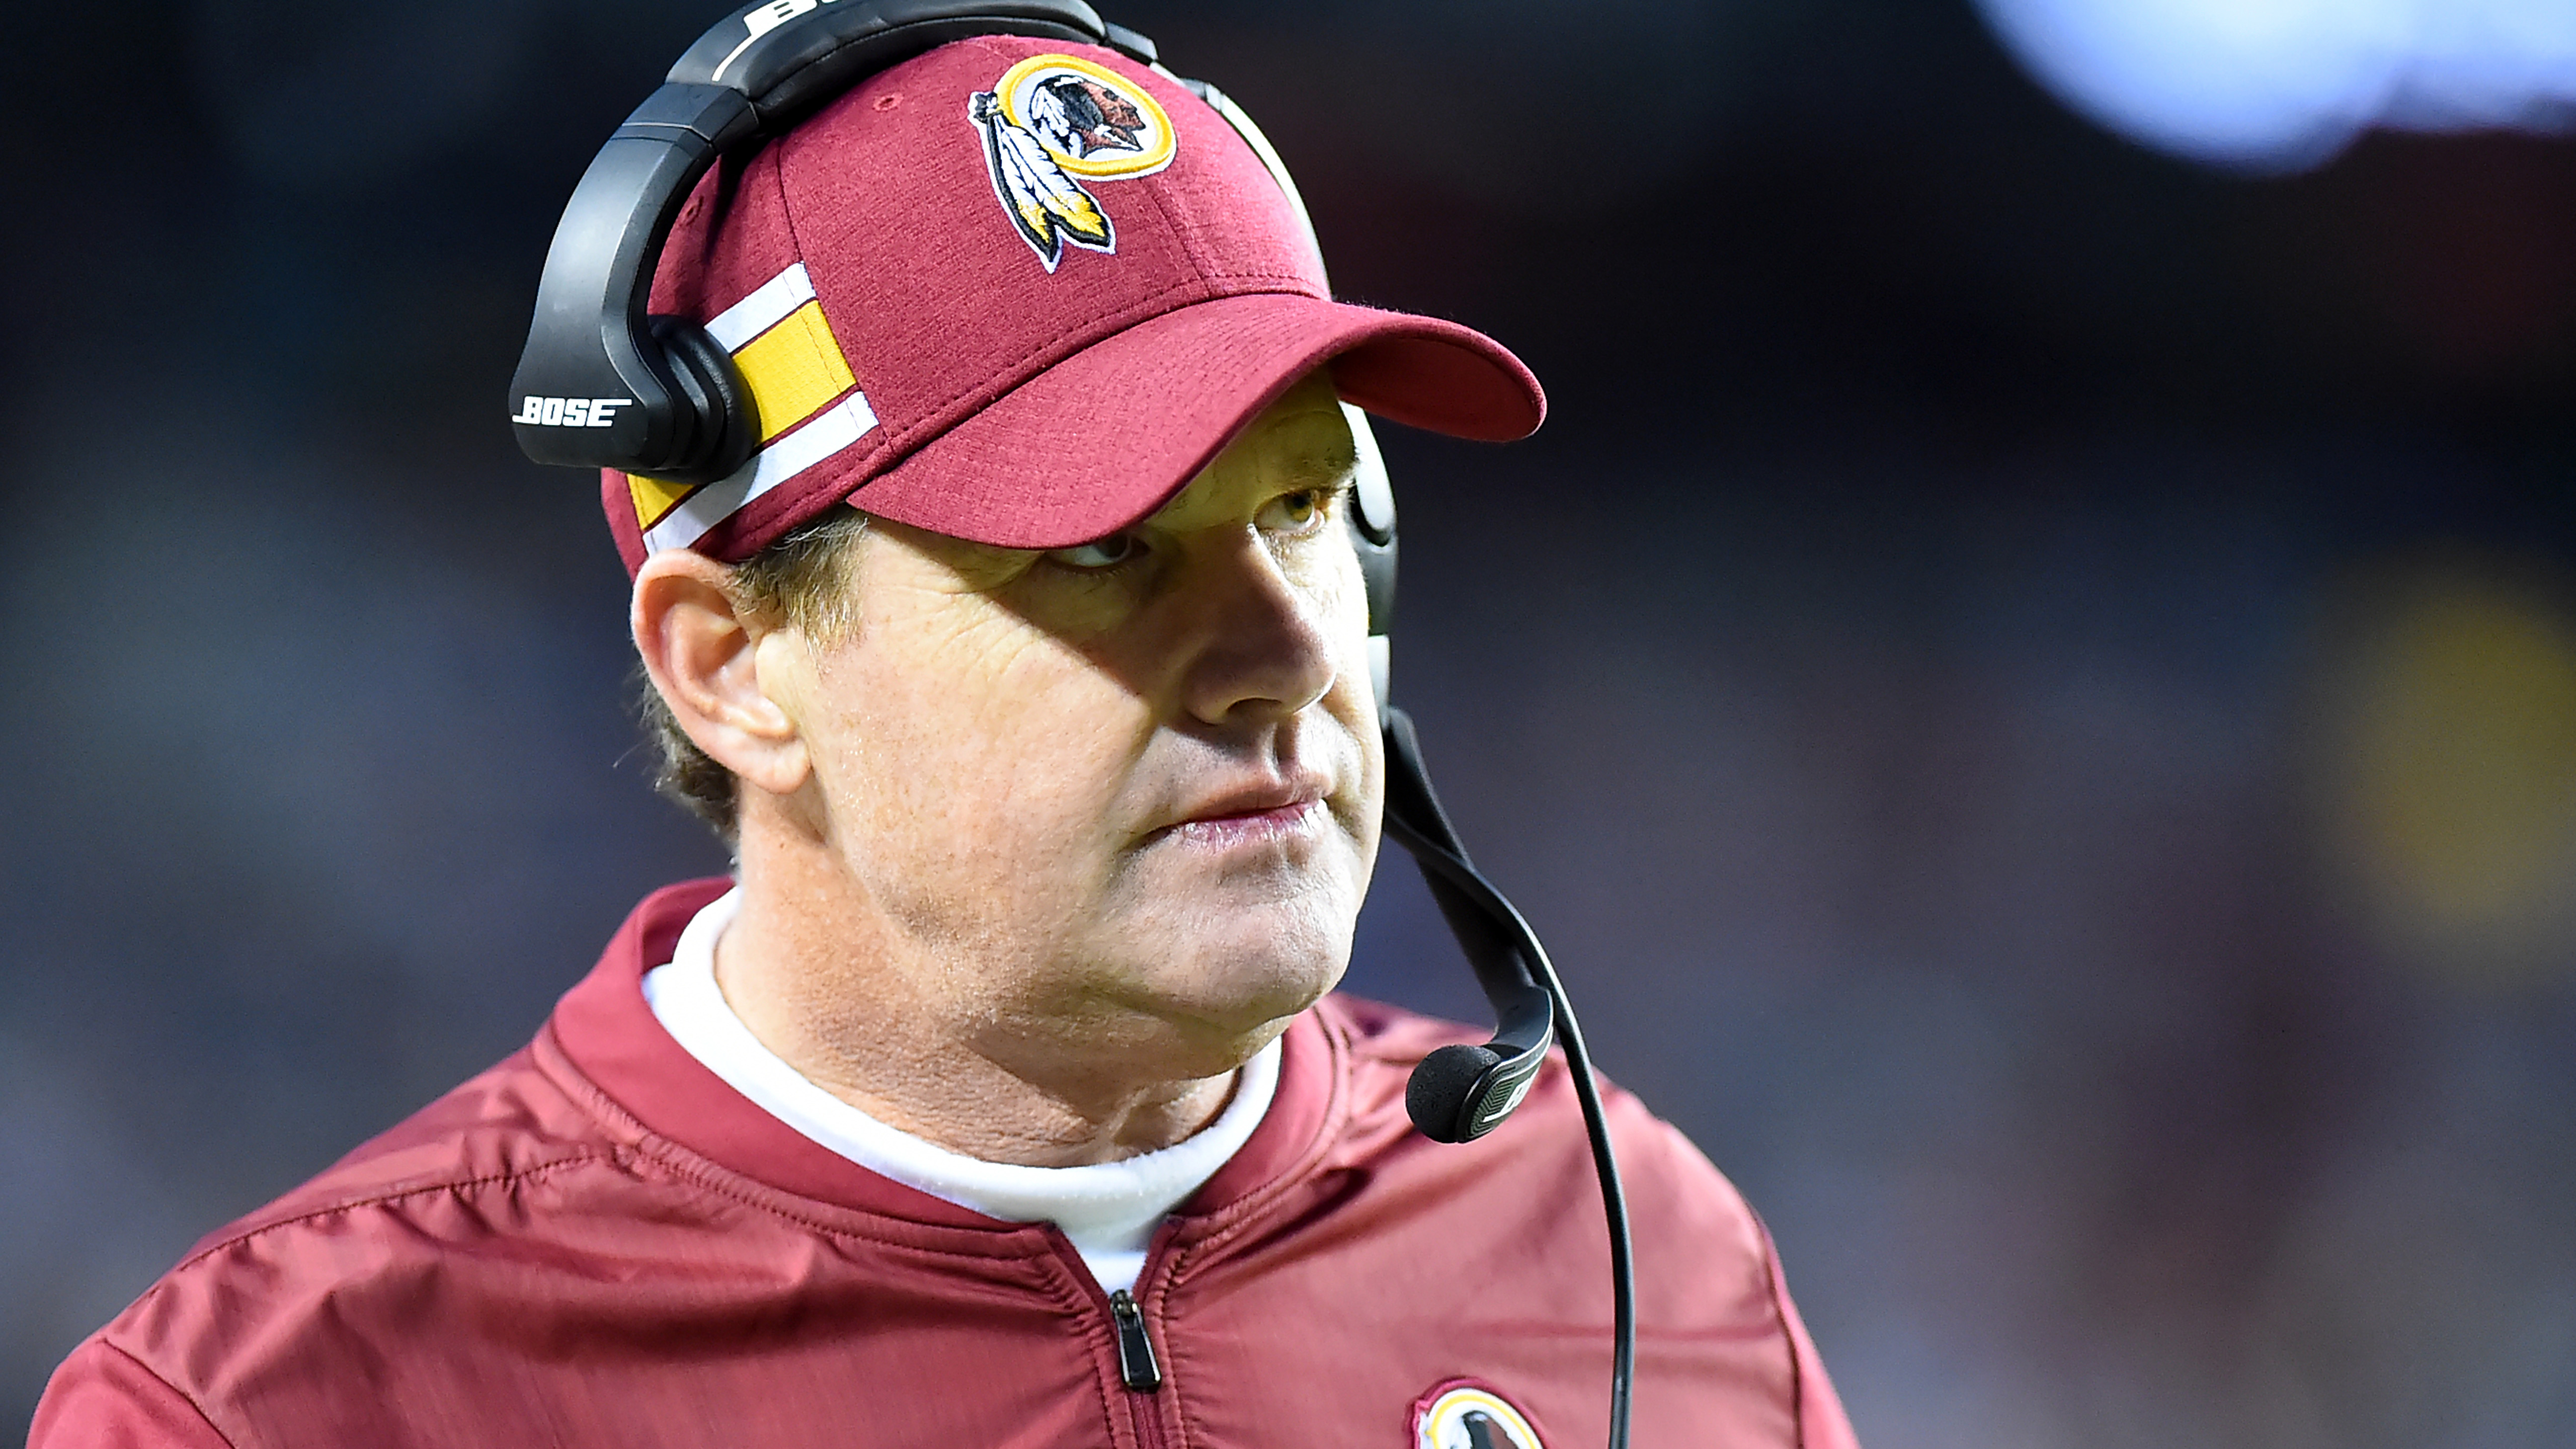 Could Redskins make playoff run with Colt McCoy as starter?